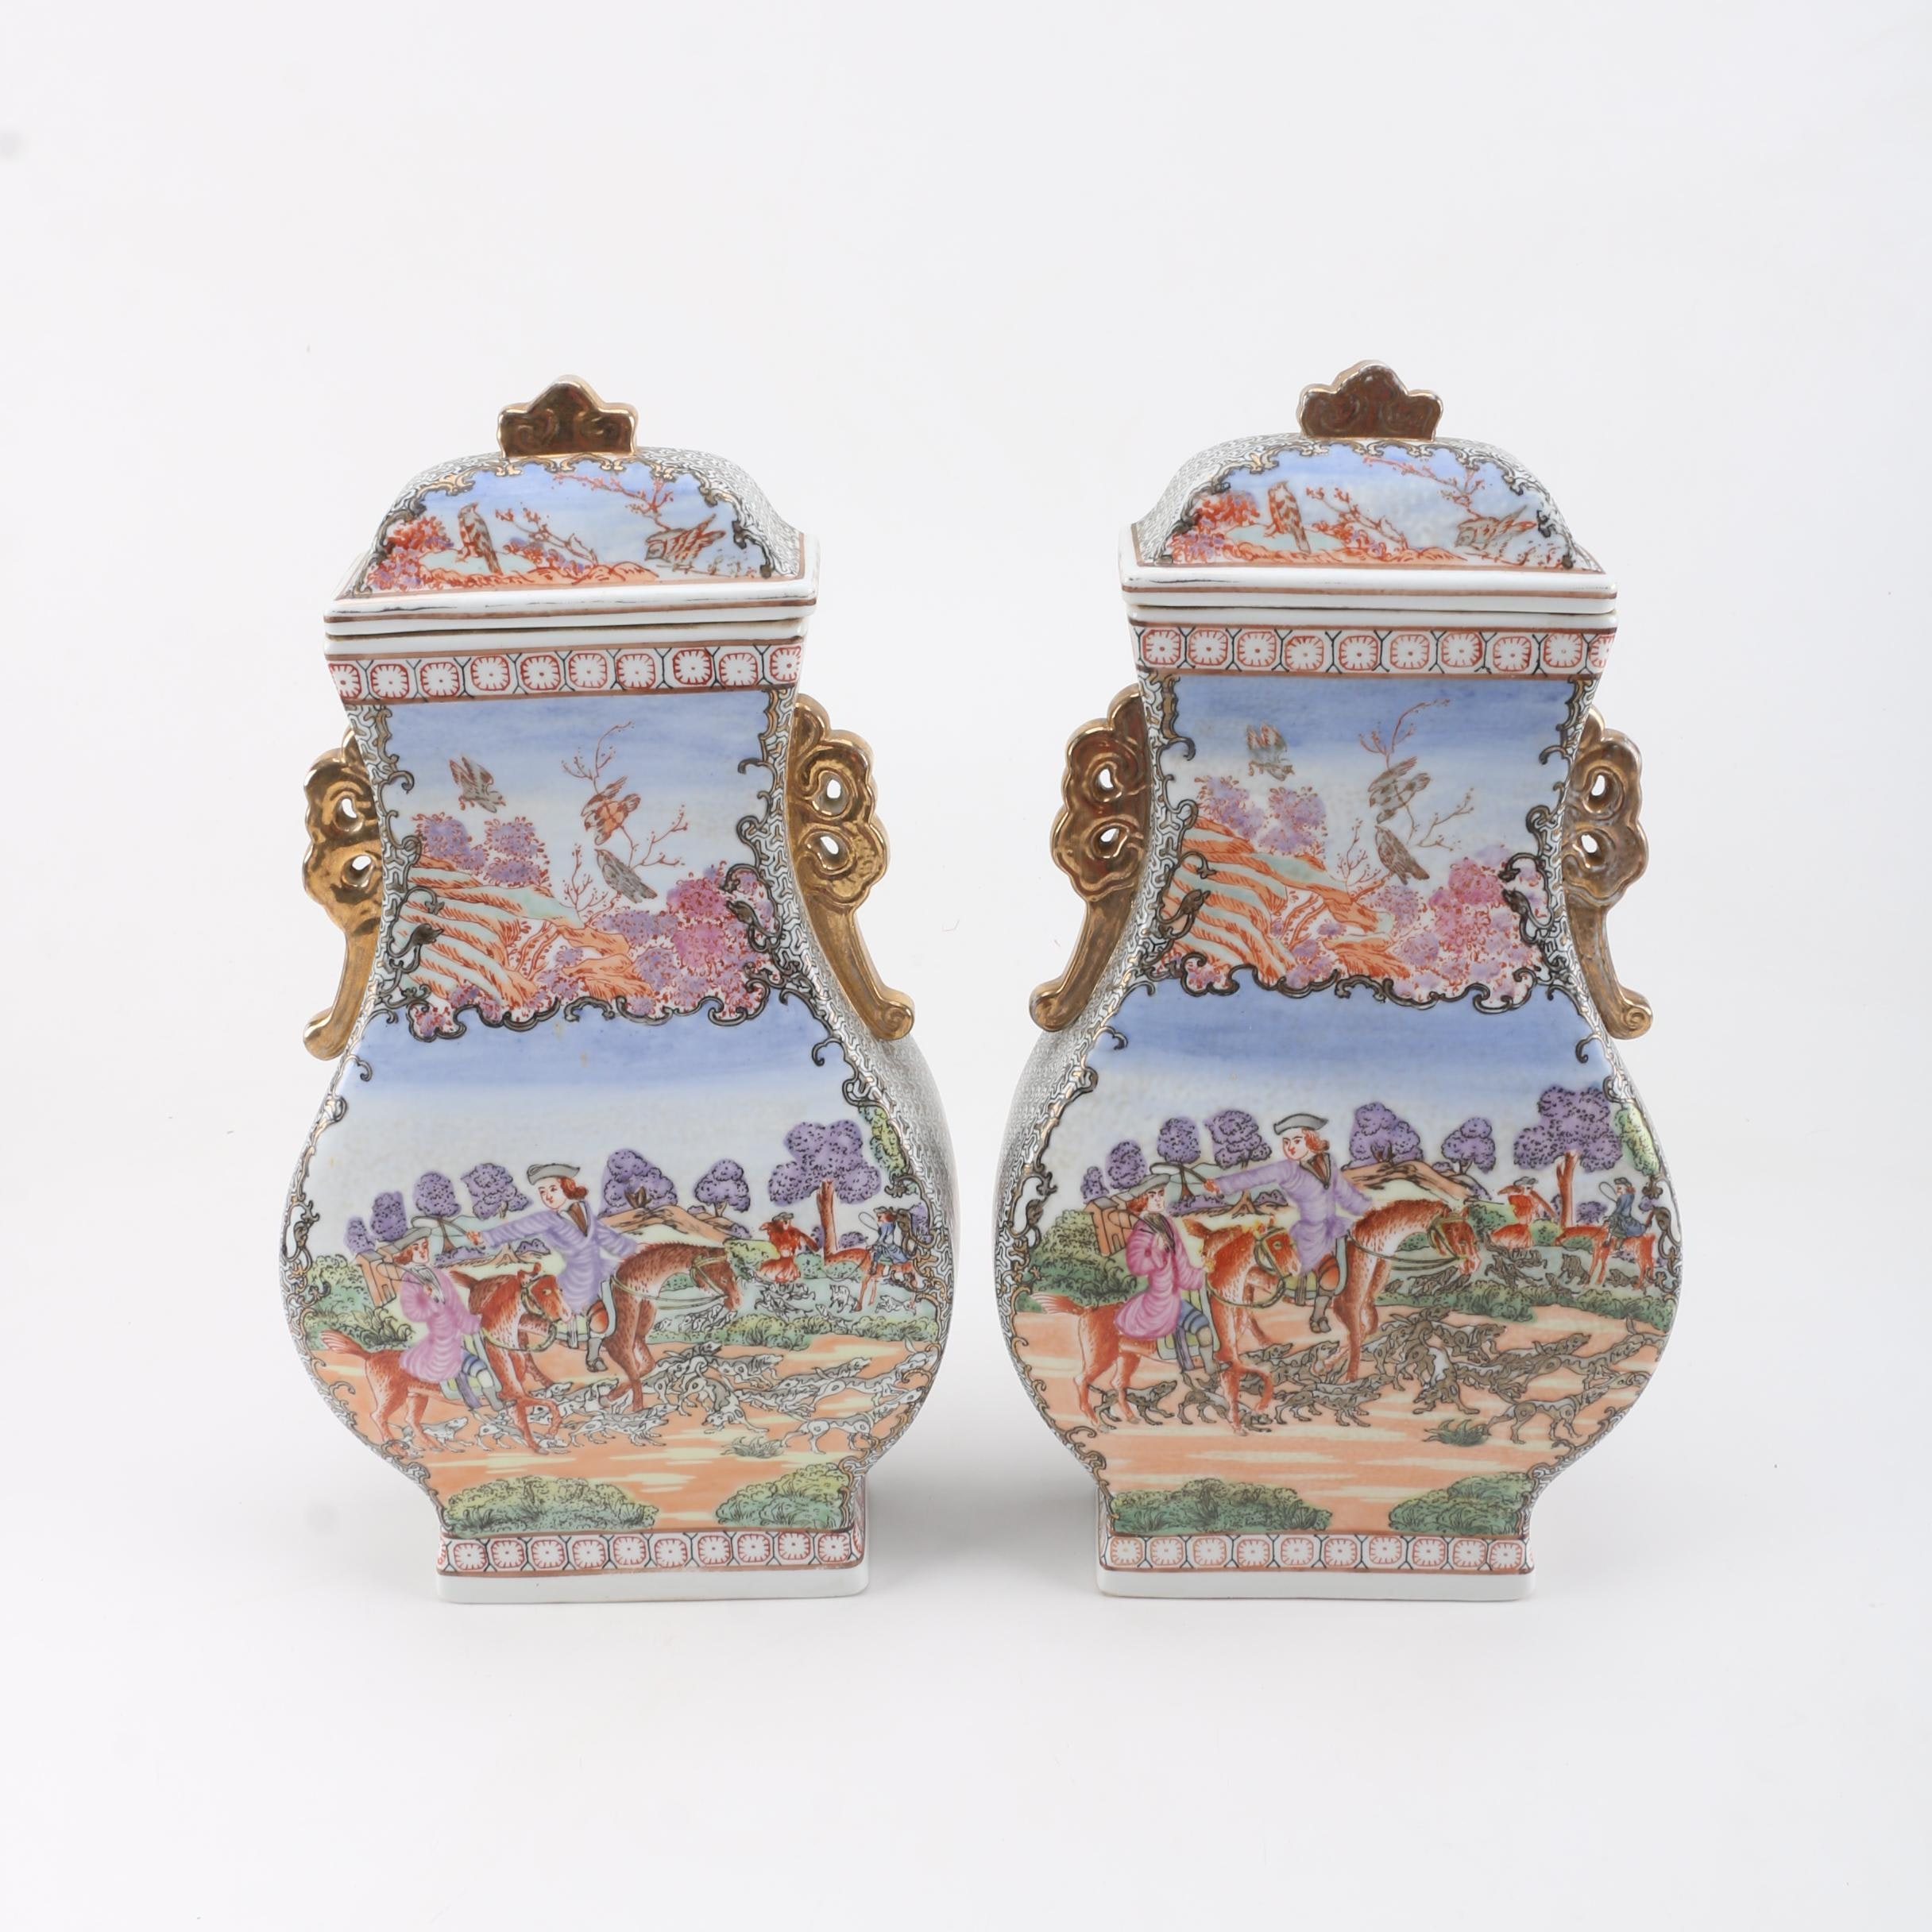 Chinese Export Style Covered Porcelain Urns